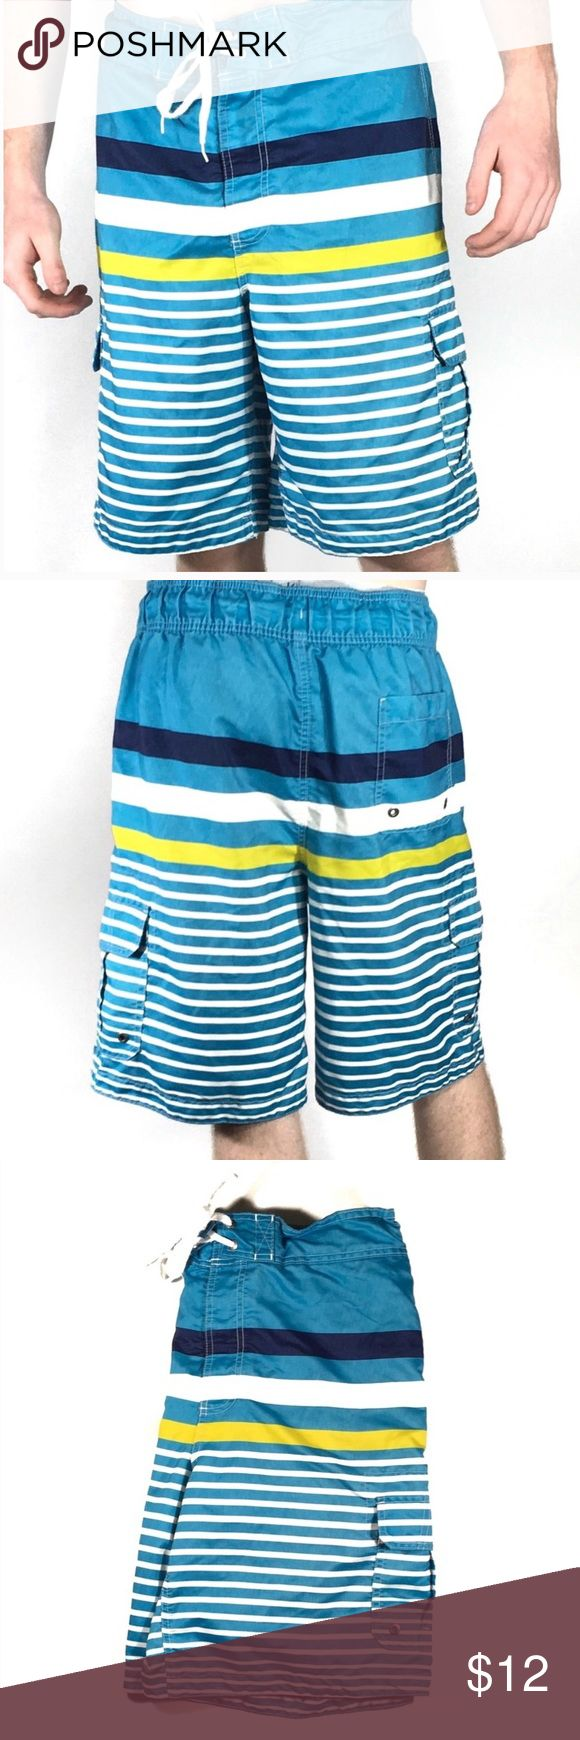 Merona Men's Swim Trunks Merona Men's Swim Trunks   Men's swim shorts with Velcro cargo pockets. Velcro/tie waist. They have the netting in them. Interior key pocket. In great condition. Merona Swim Swim Trunks